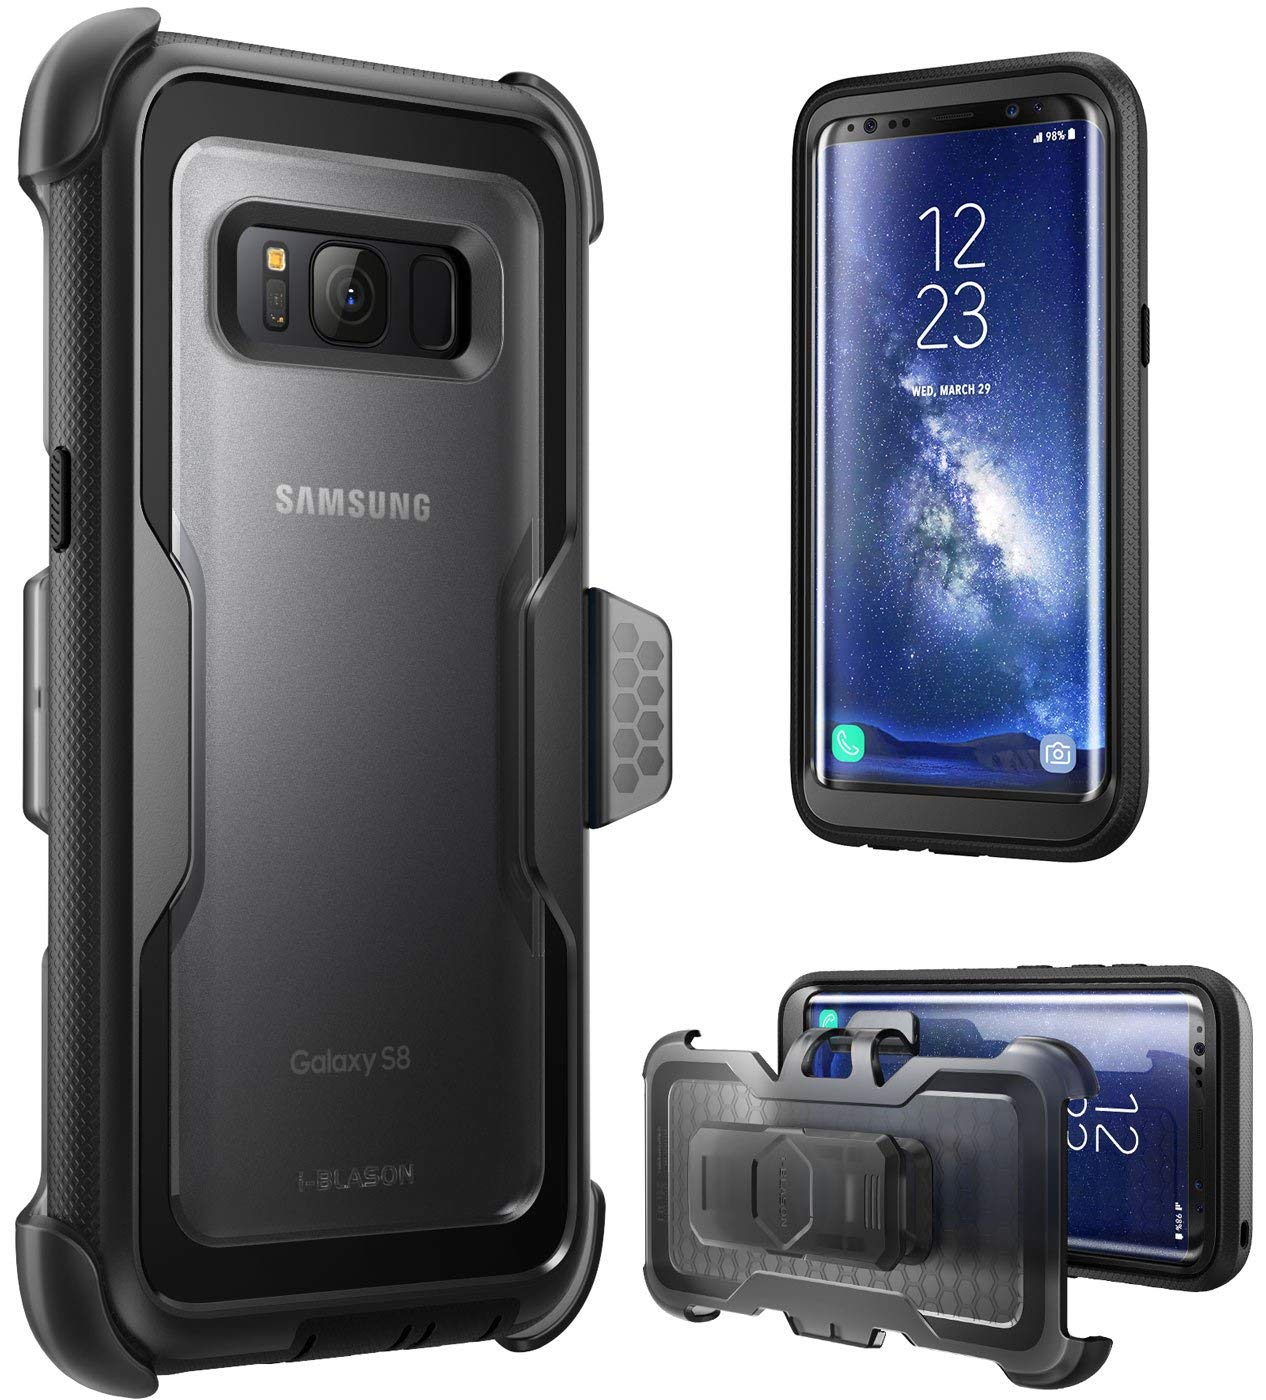 I-Blason Galaxy S8 Case, [Armorbox] [Full Body] [Heavy Duty Protection ] Shock Reduction / Bumper Case Without Screen Protector For Samsung Galaxy S8 2017 Release (Black) (Renewed) by i-Blason